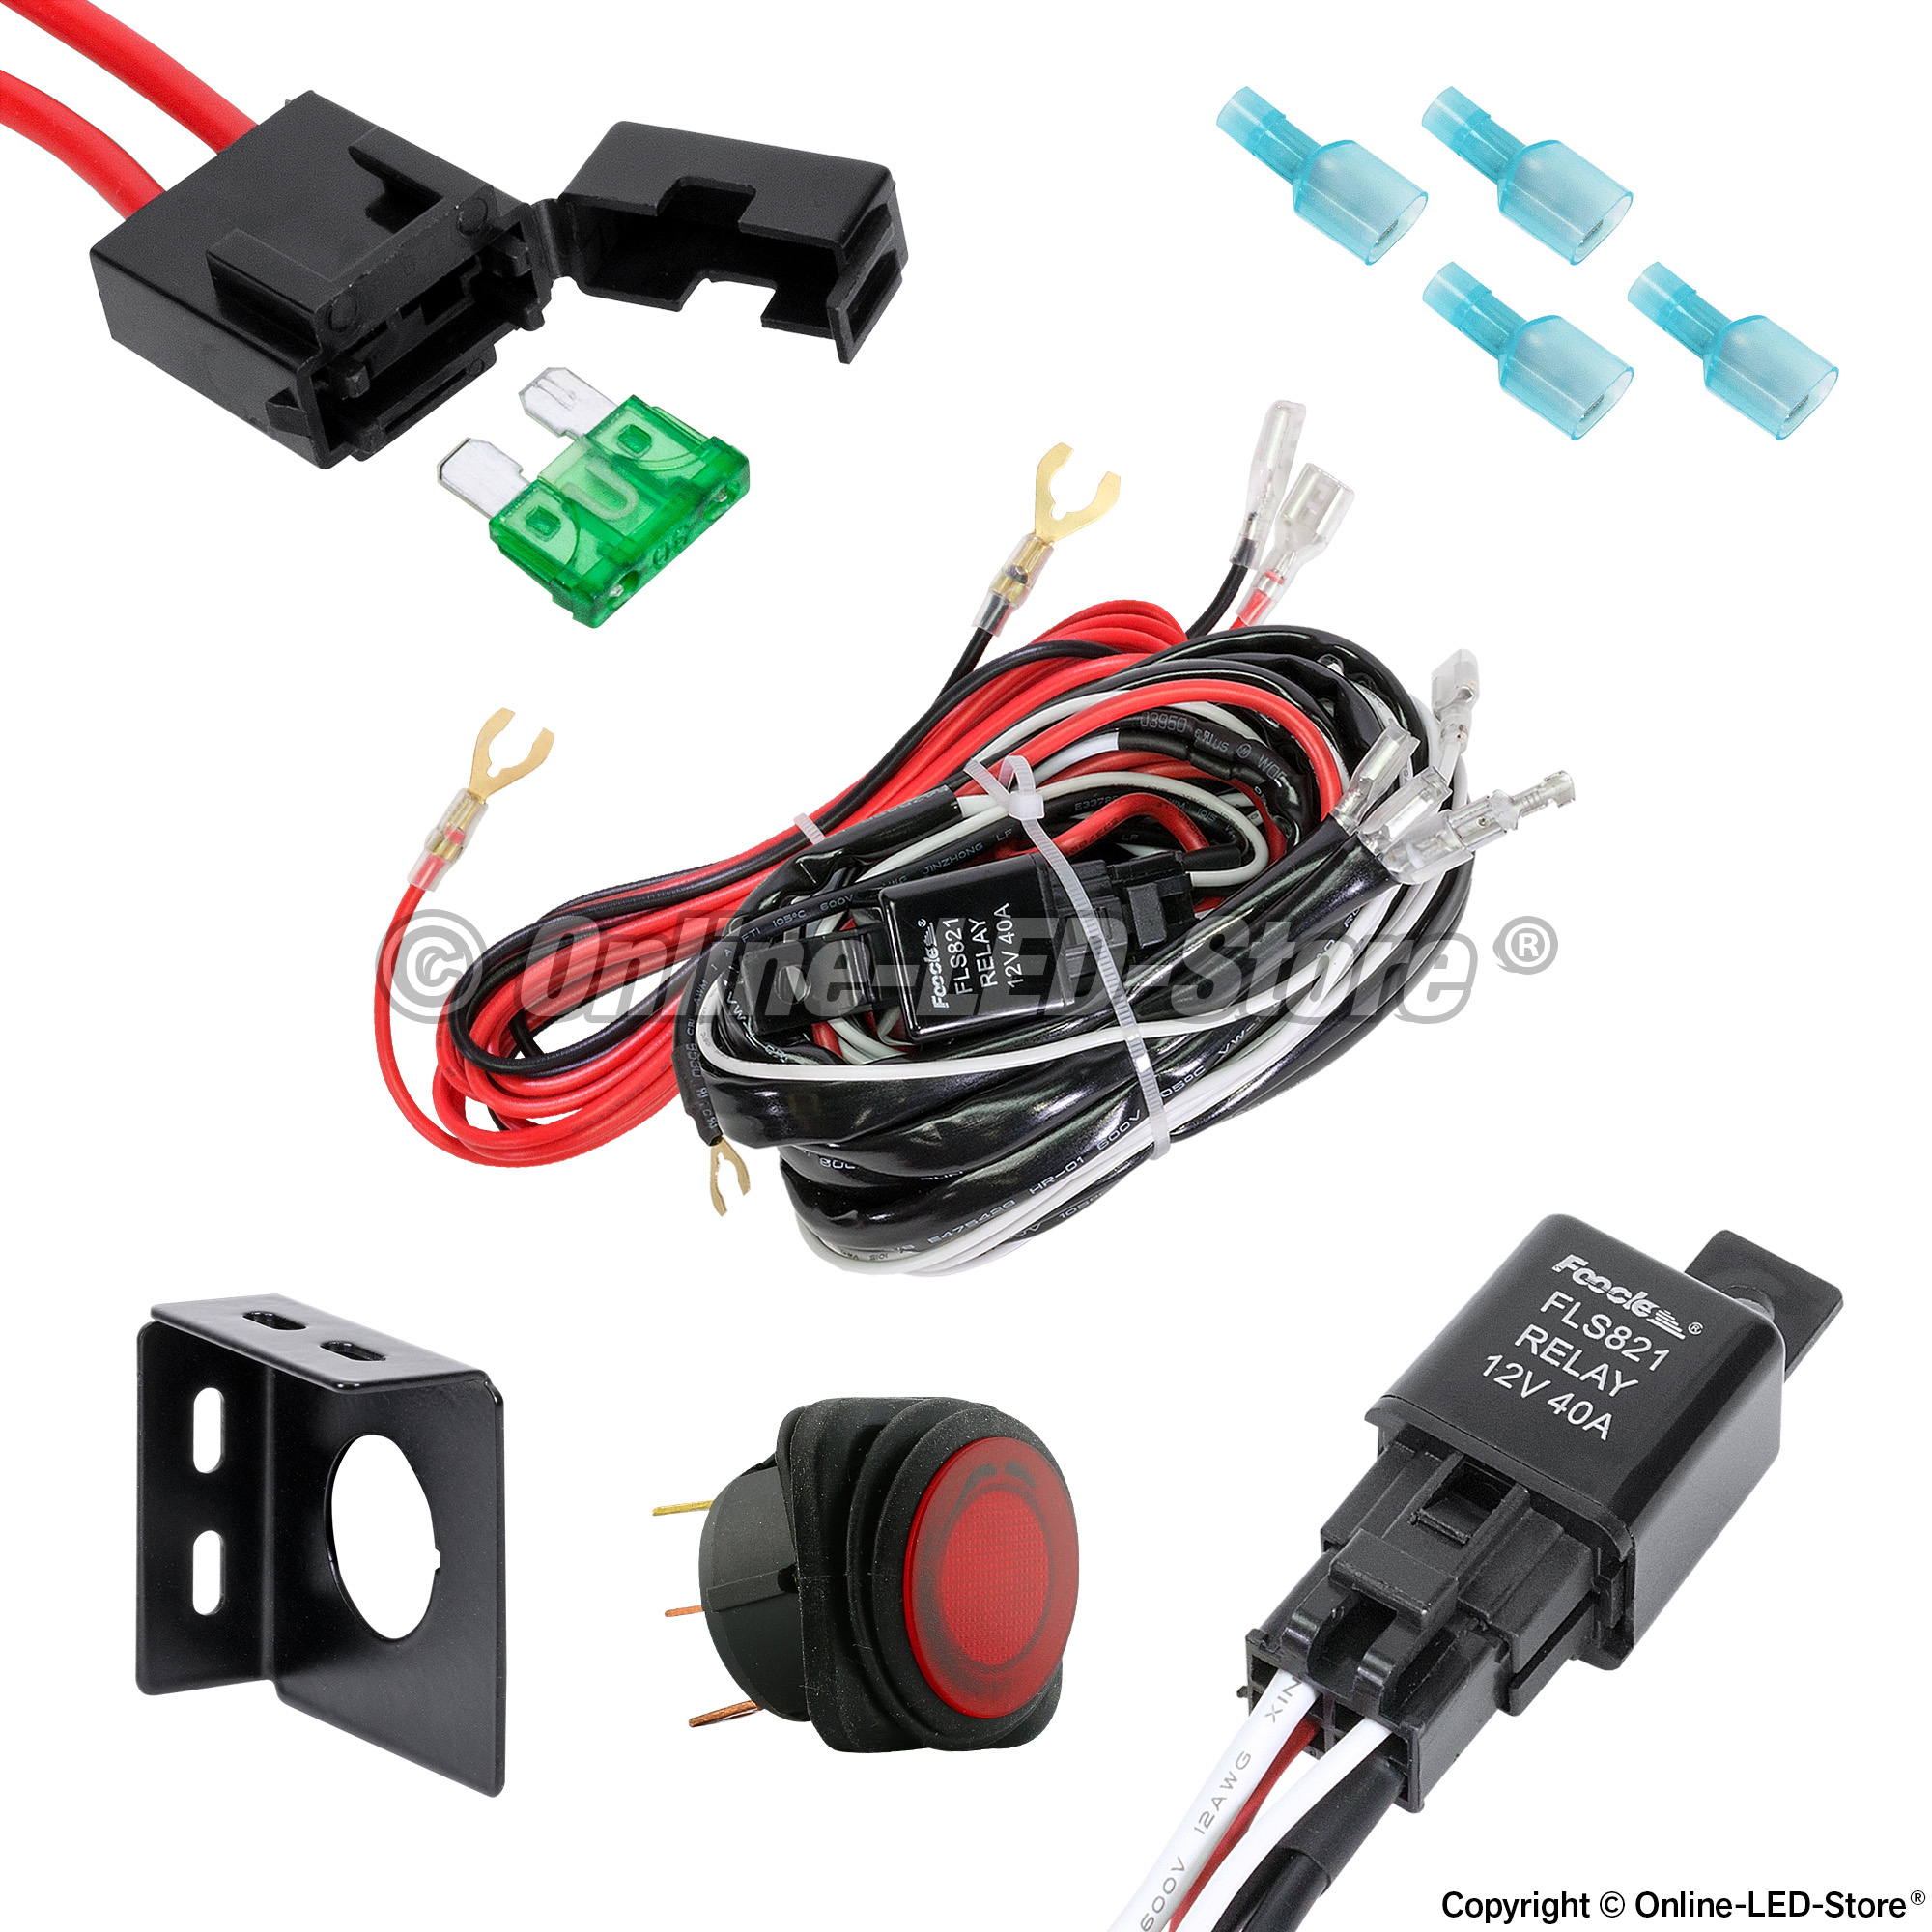 LED Wiring Harness | Vehicle Wiring Harness | Online LED Store